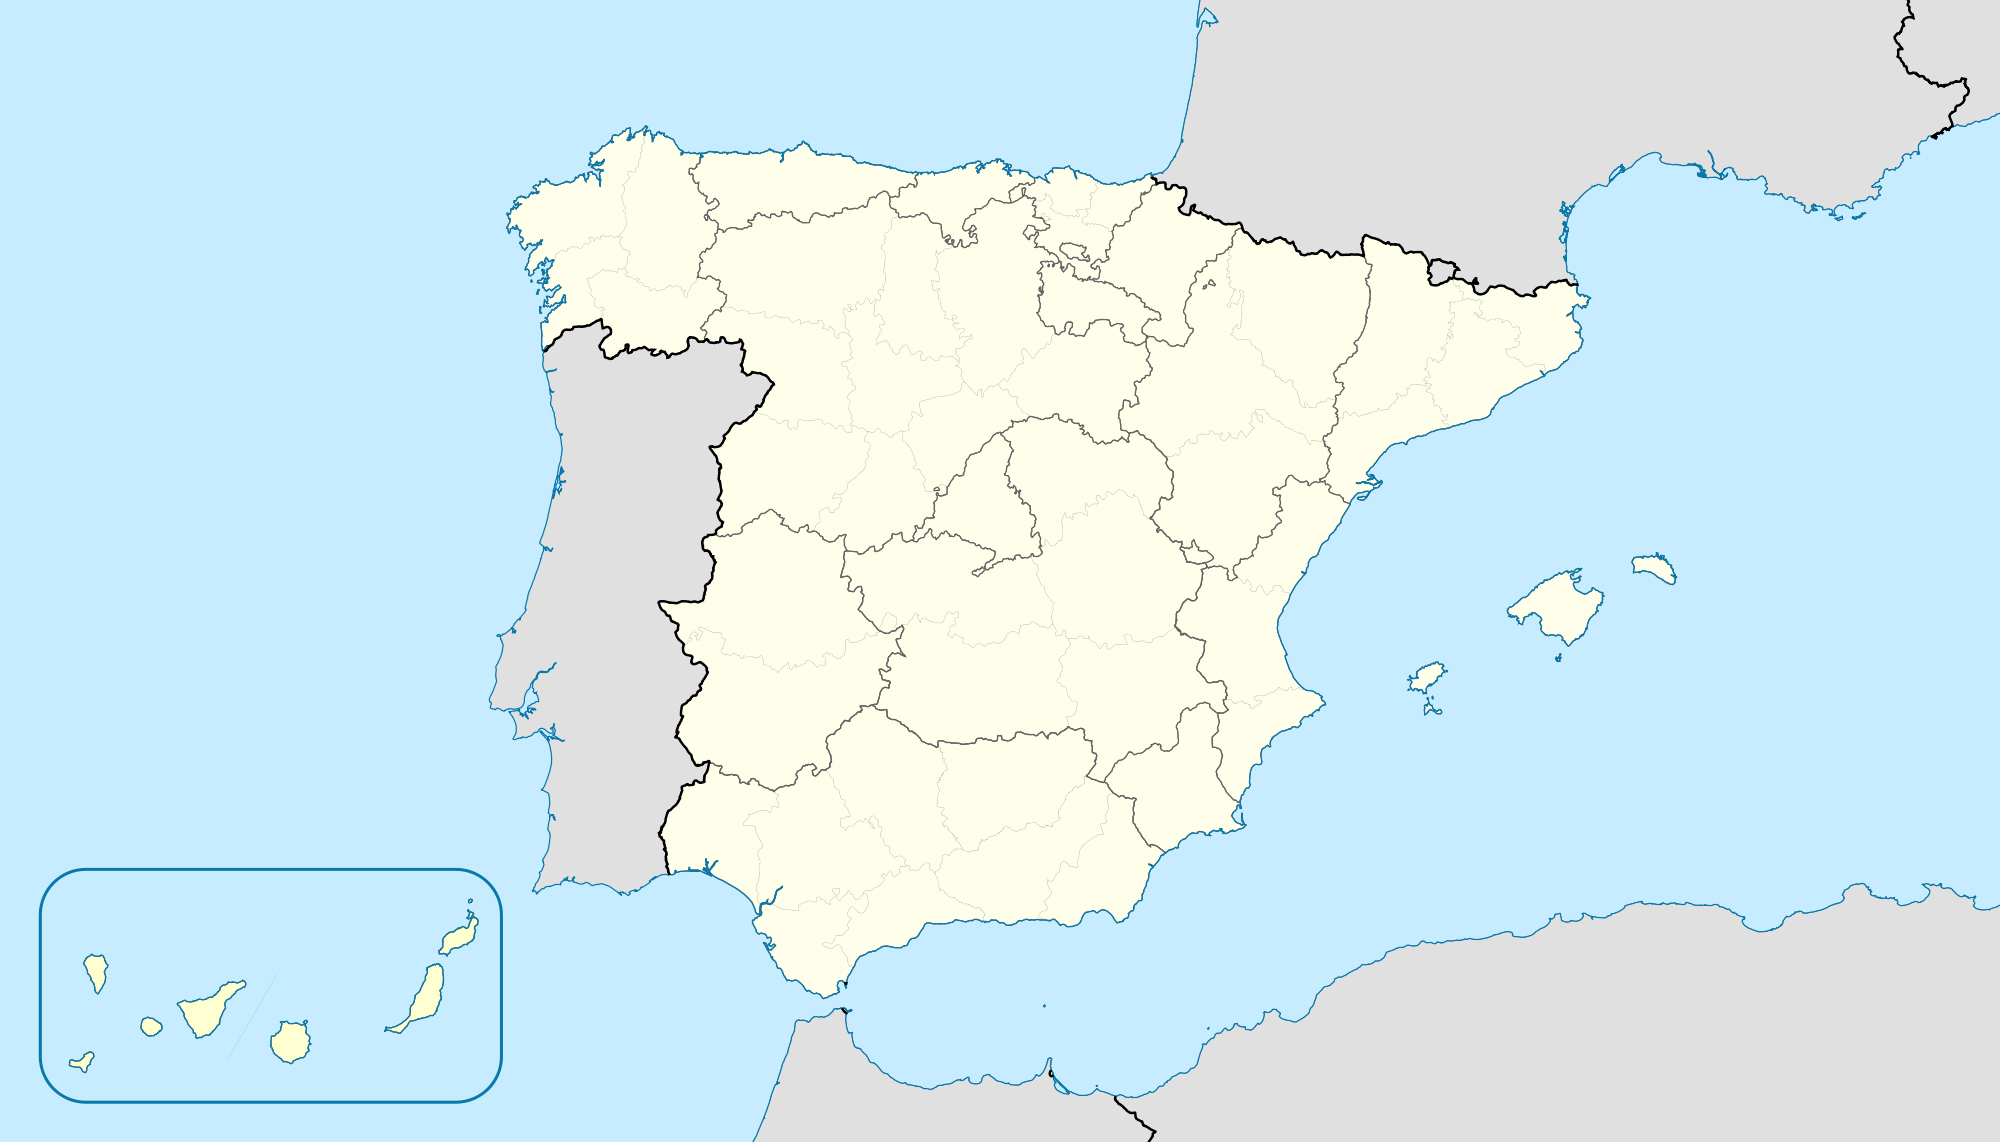 Topographical Map Of Spain.Large Detailed Contour Map Of Spain Spain Large Detailed Contour